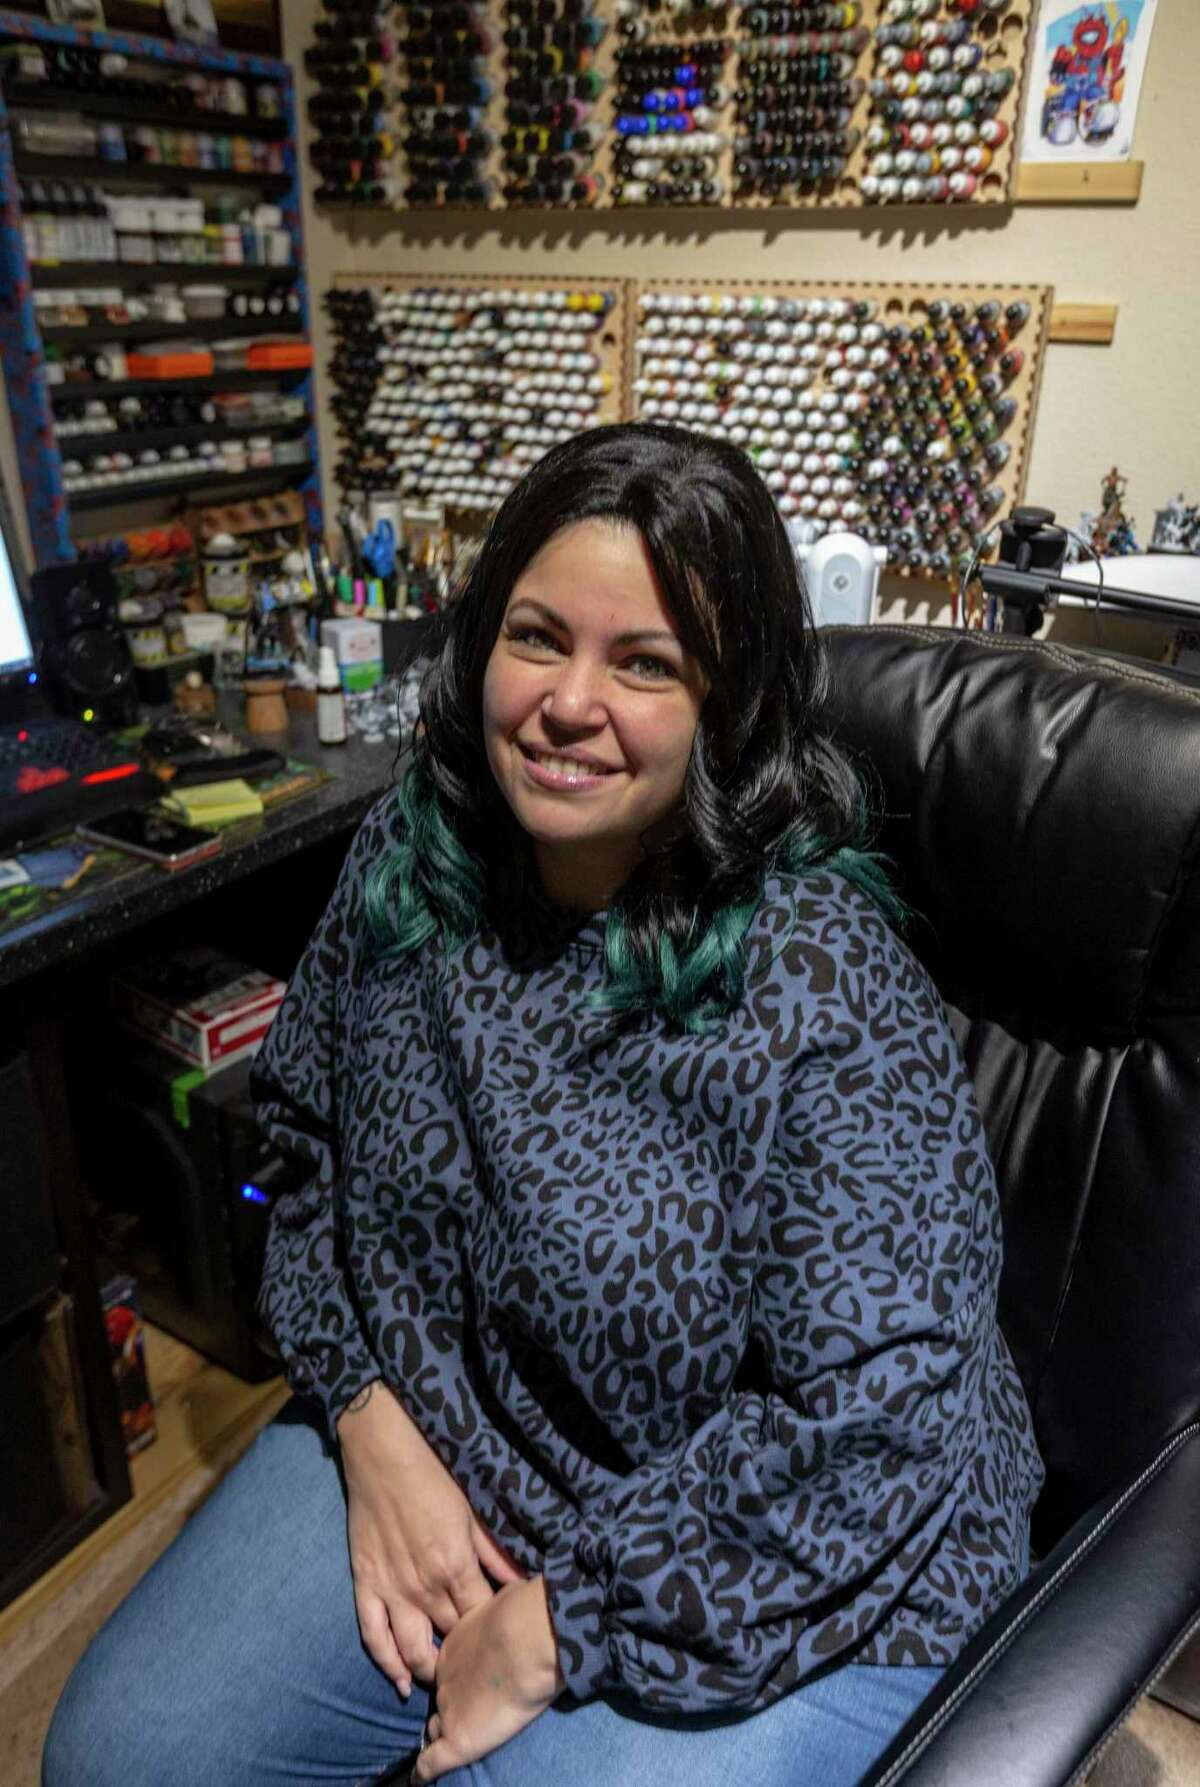 Lyn Stahl in her home office in San Antonio where she operates Metalhead Minis, a business she started in 2009 to paint miniature Dungeons & Dragons figures and other tabletop gaming miniatures for players and collectors.